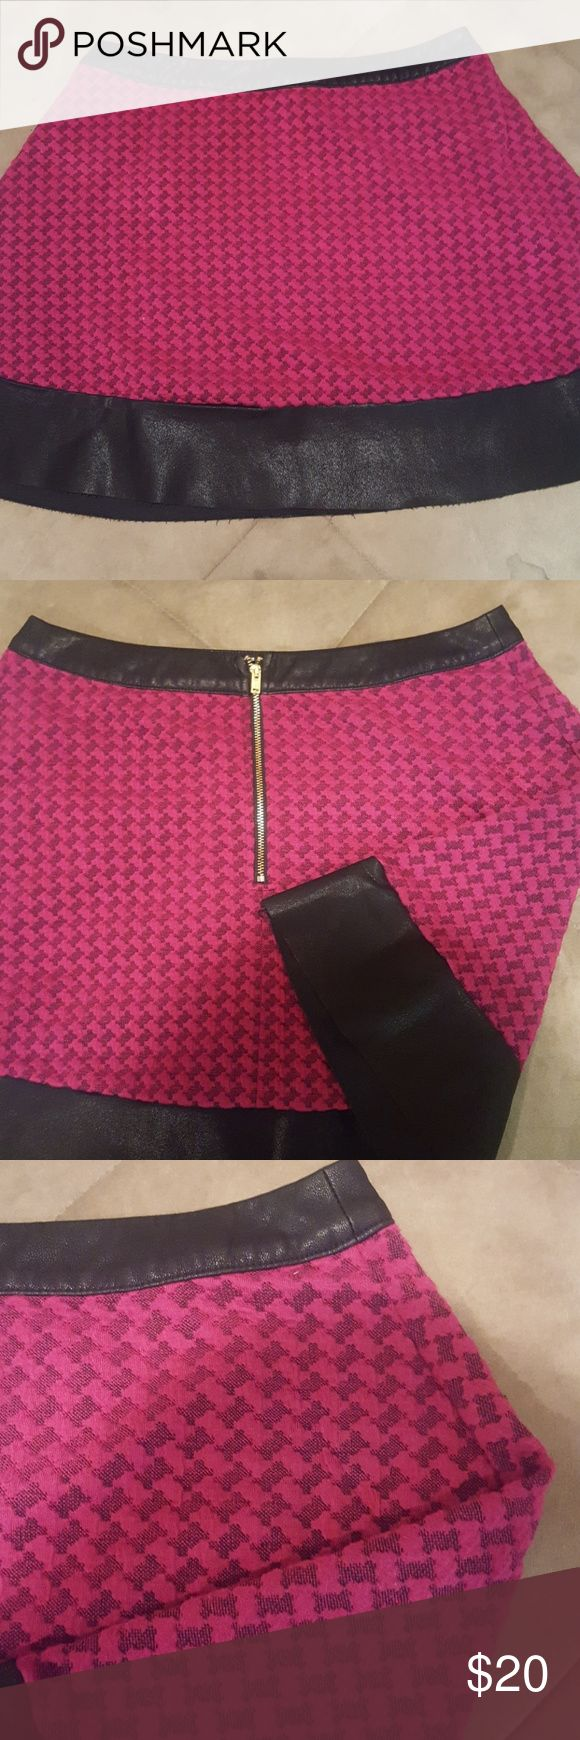 Candie's Pink and Leather Skater Skirt - excellent used condition  - sexy leather at waistline and bottom - gold zipper (intact) in back Candie's Skirts Circle & Skater